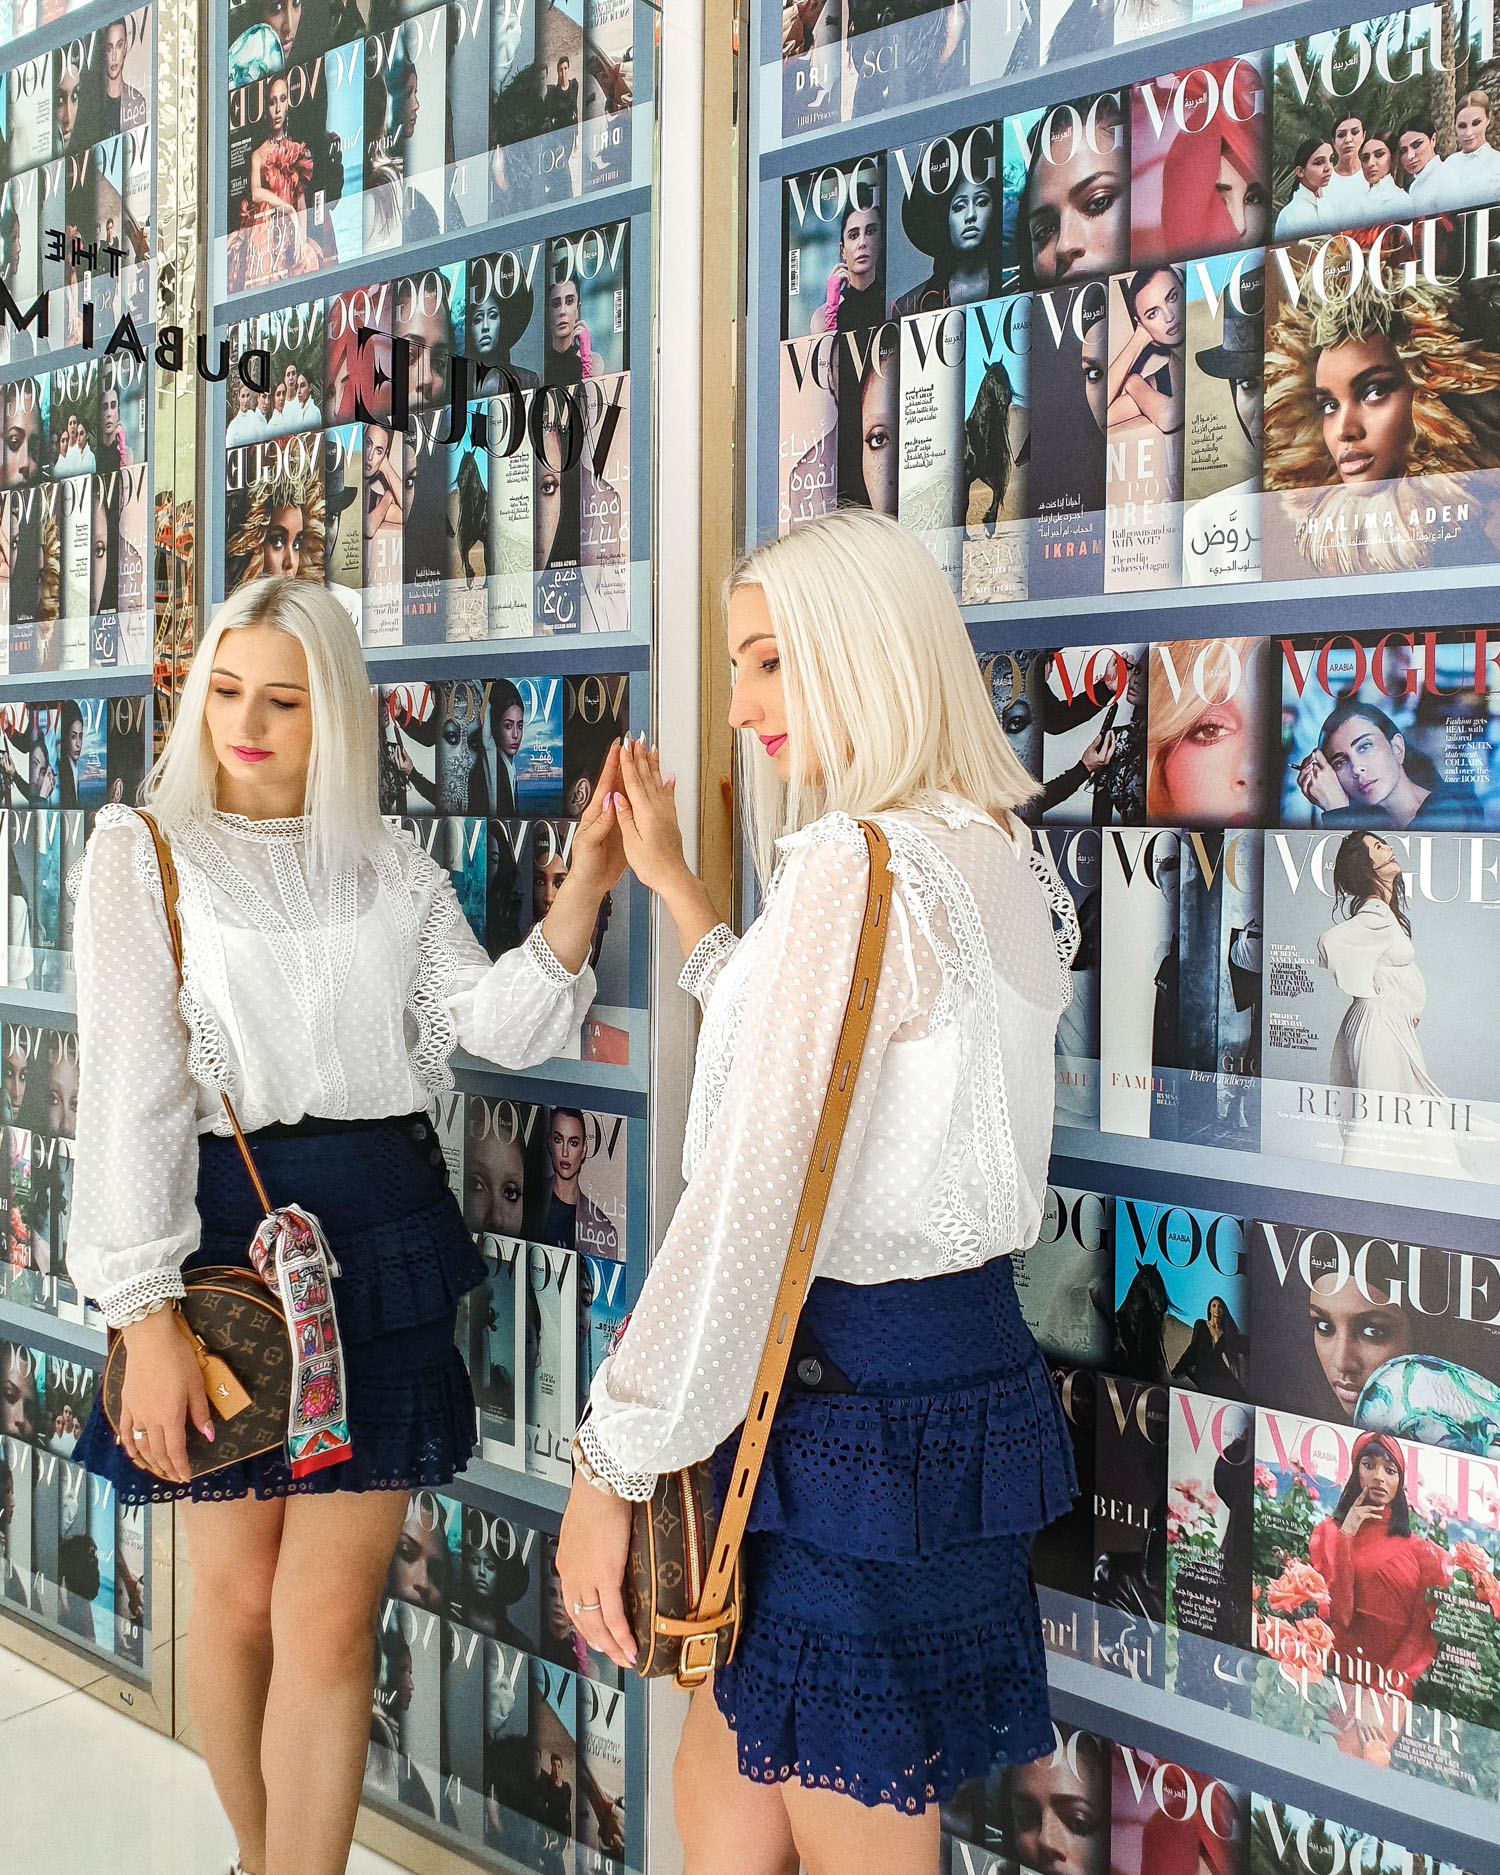 In the older section of Fashion Avenue